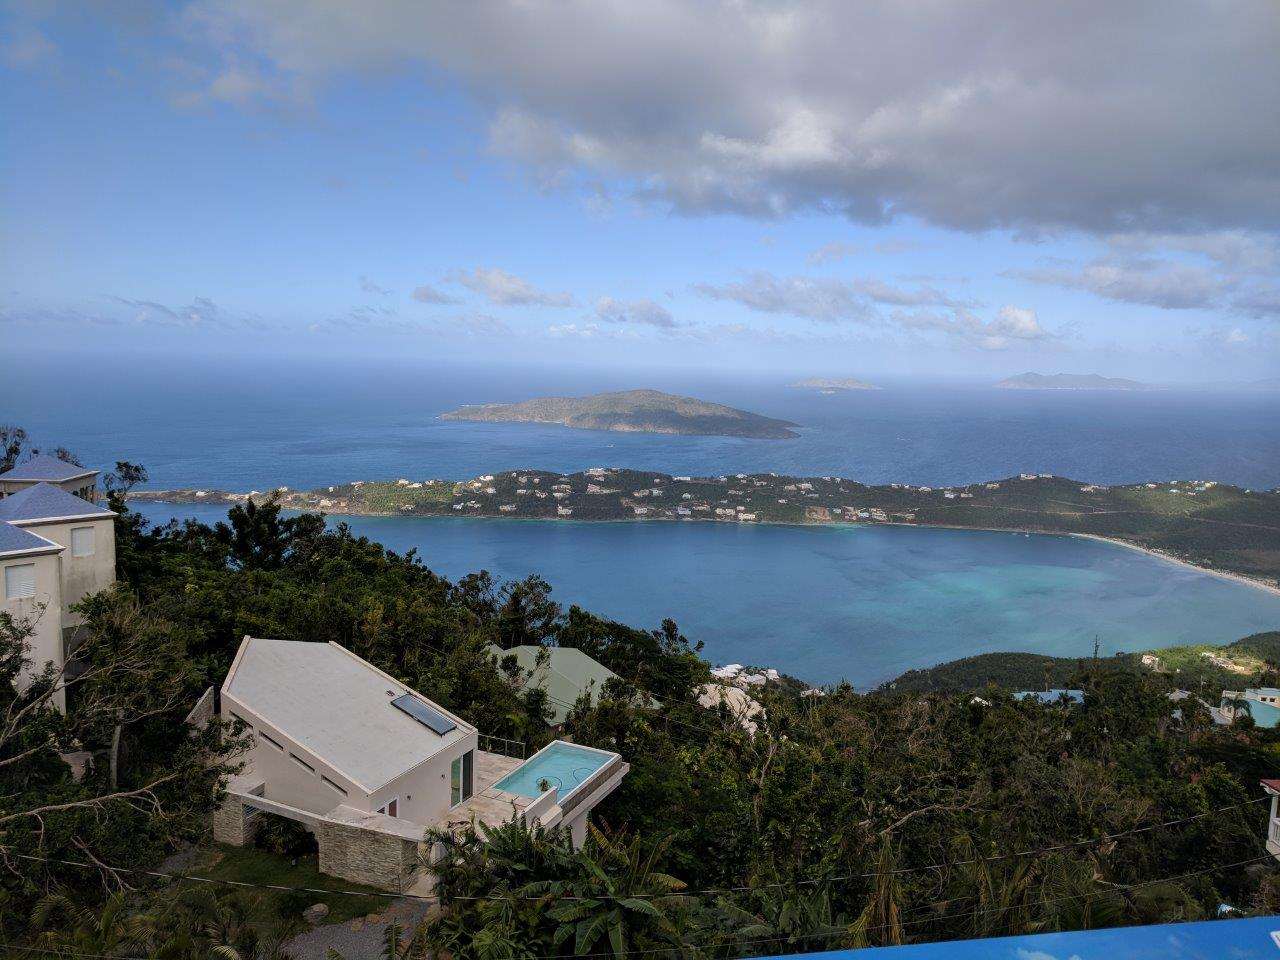 View from top of St. Thomas